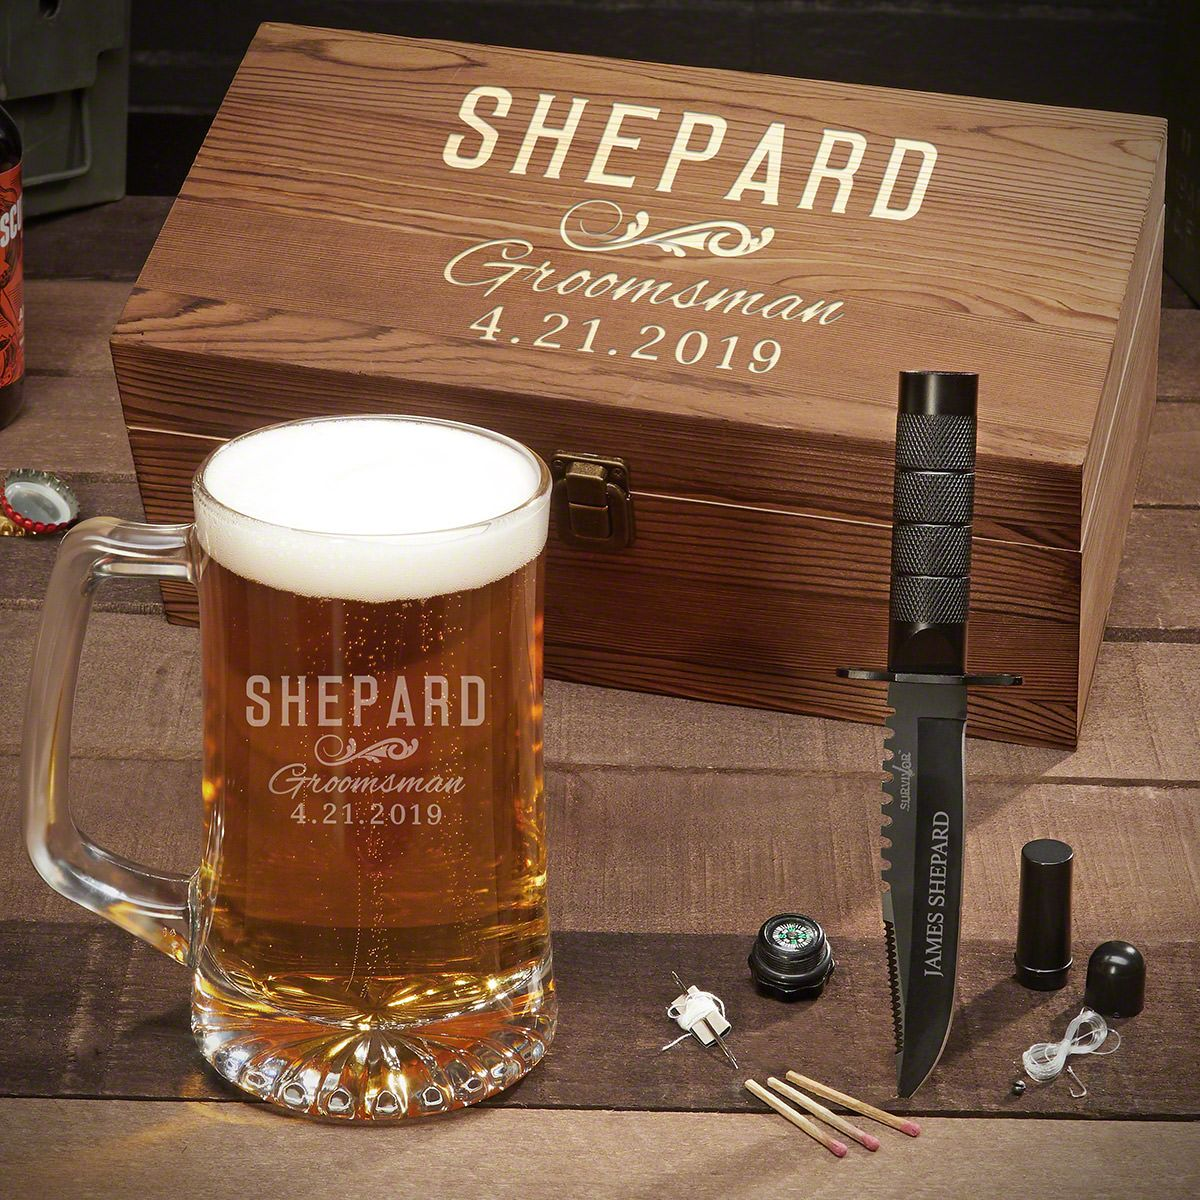 Classic Groomsman Personalized Gift for Groomsmen